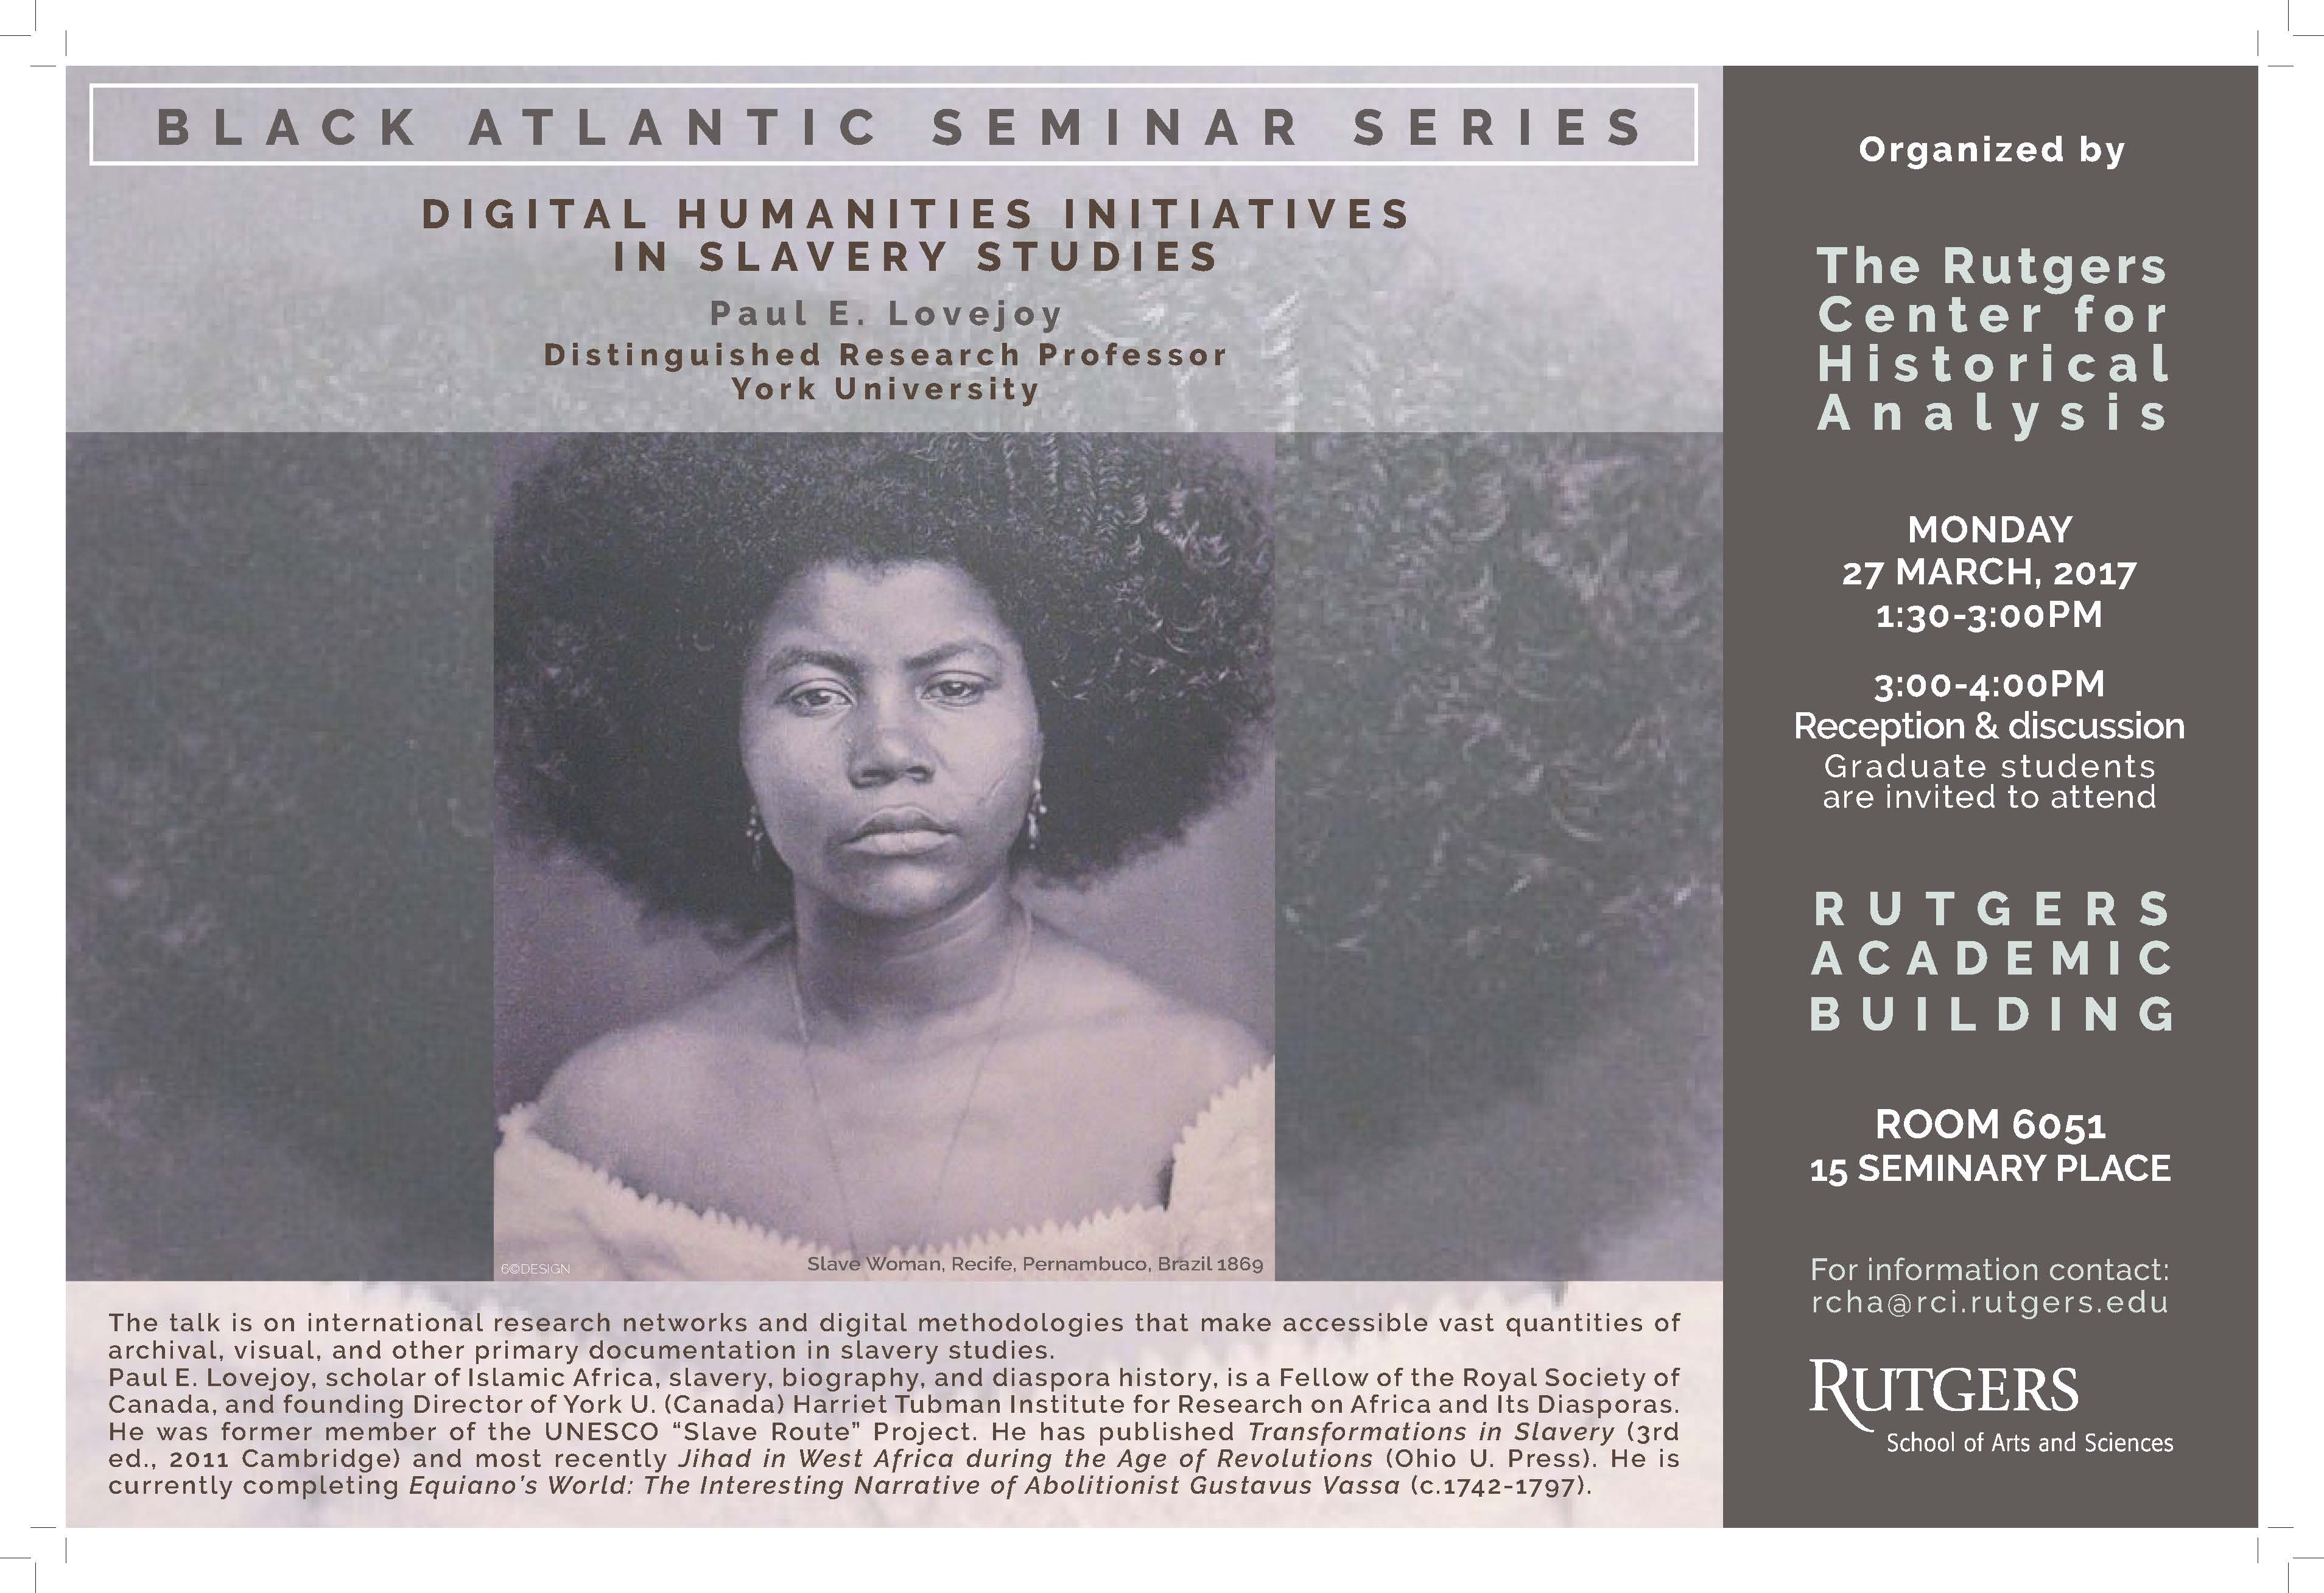 Digital Humanities Initiatives in Slavery Studies